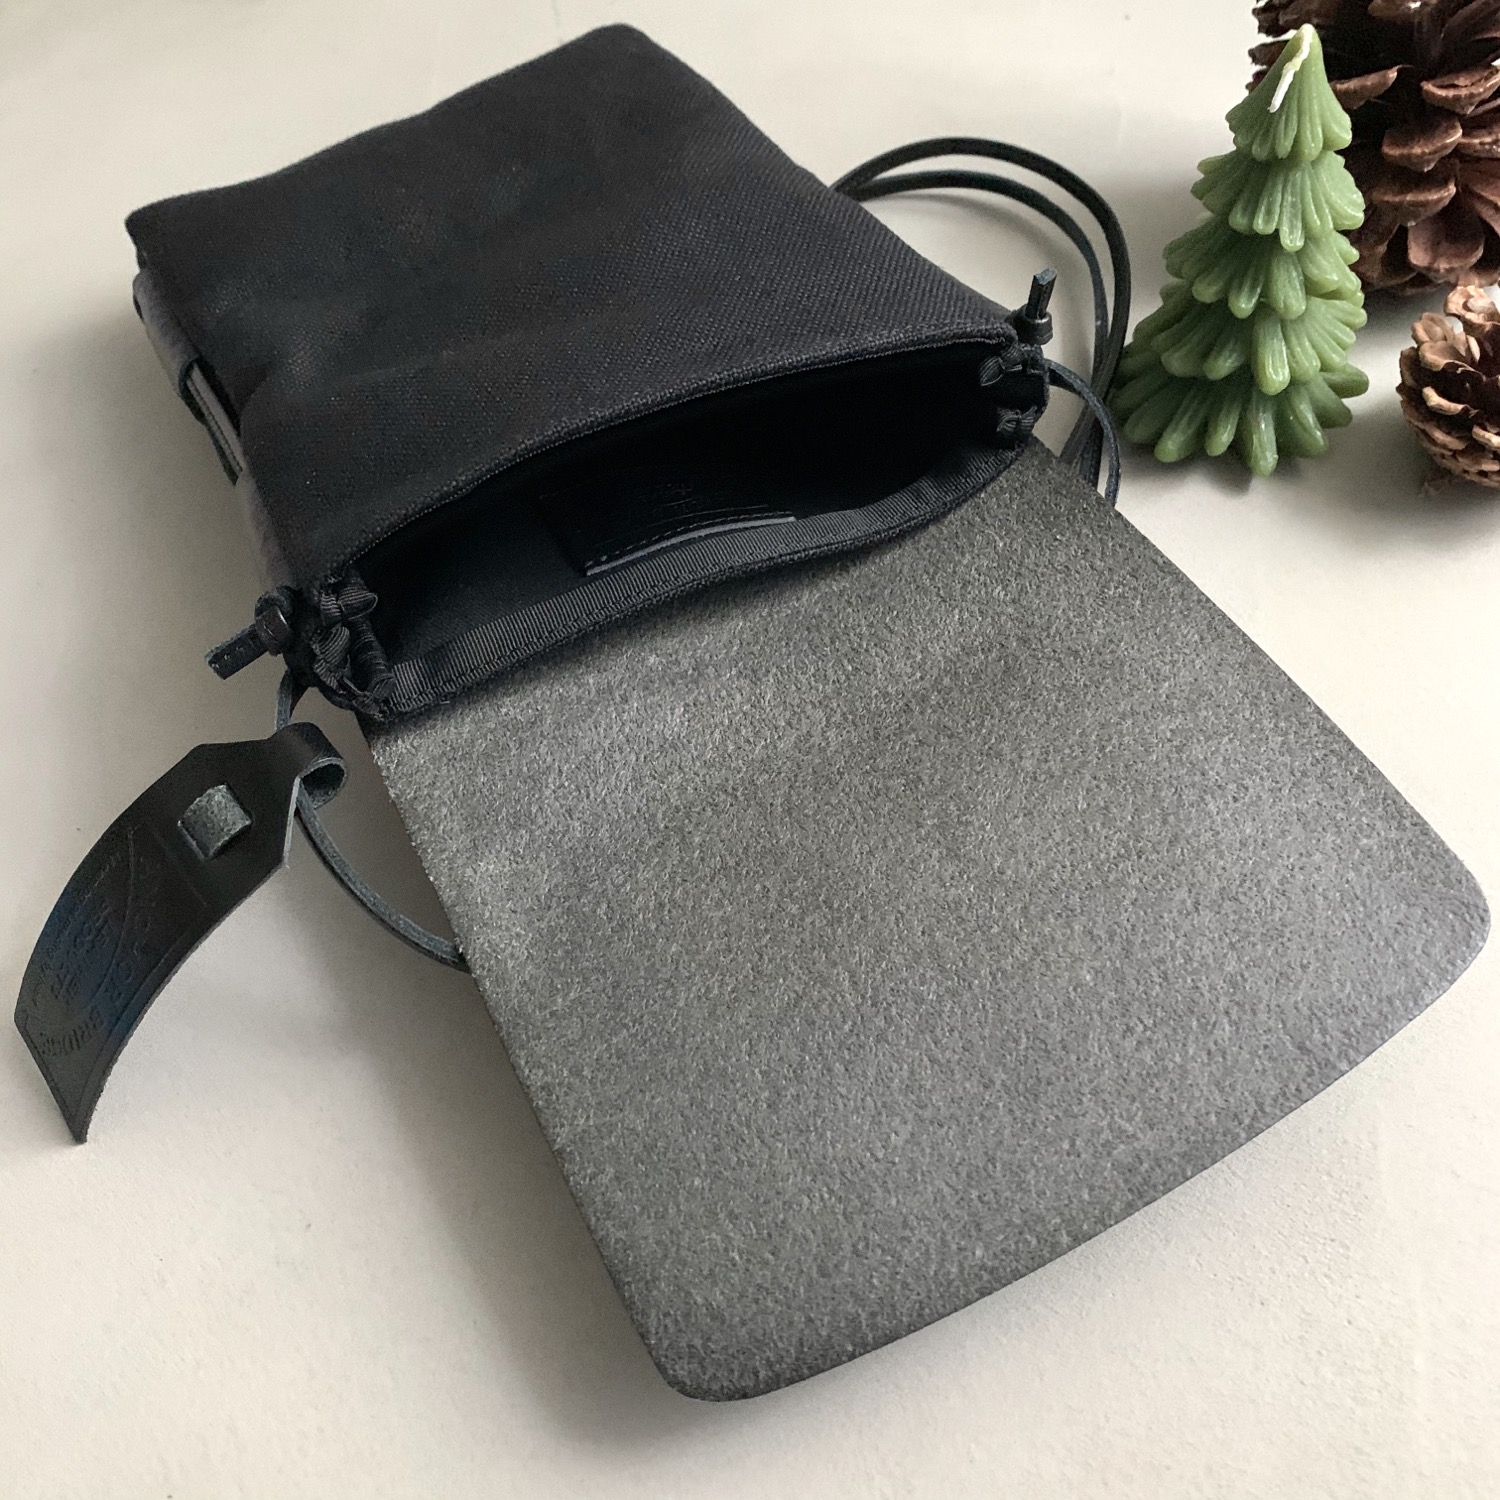 Thumbnail: Anchor Bridge Italy Etrsuco Leather Shoulder Pouch